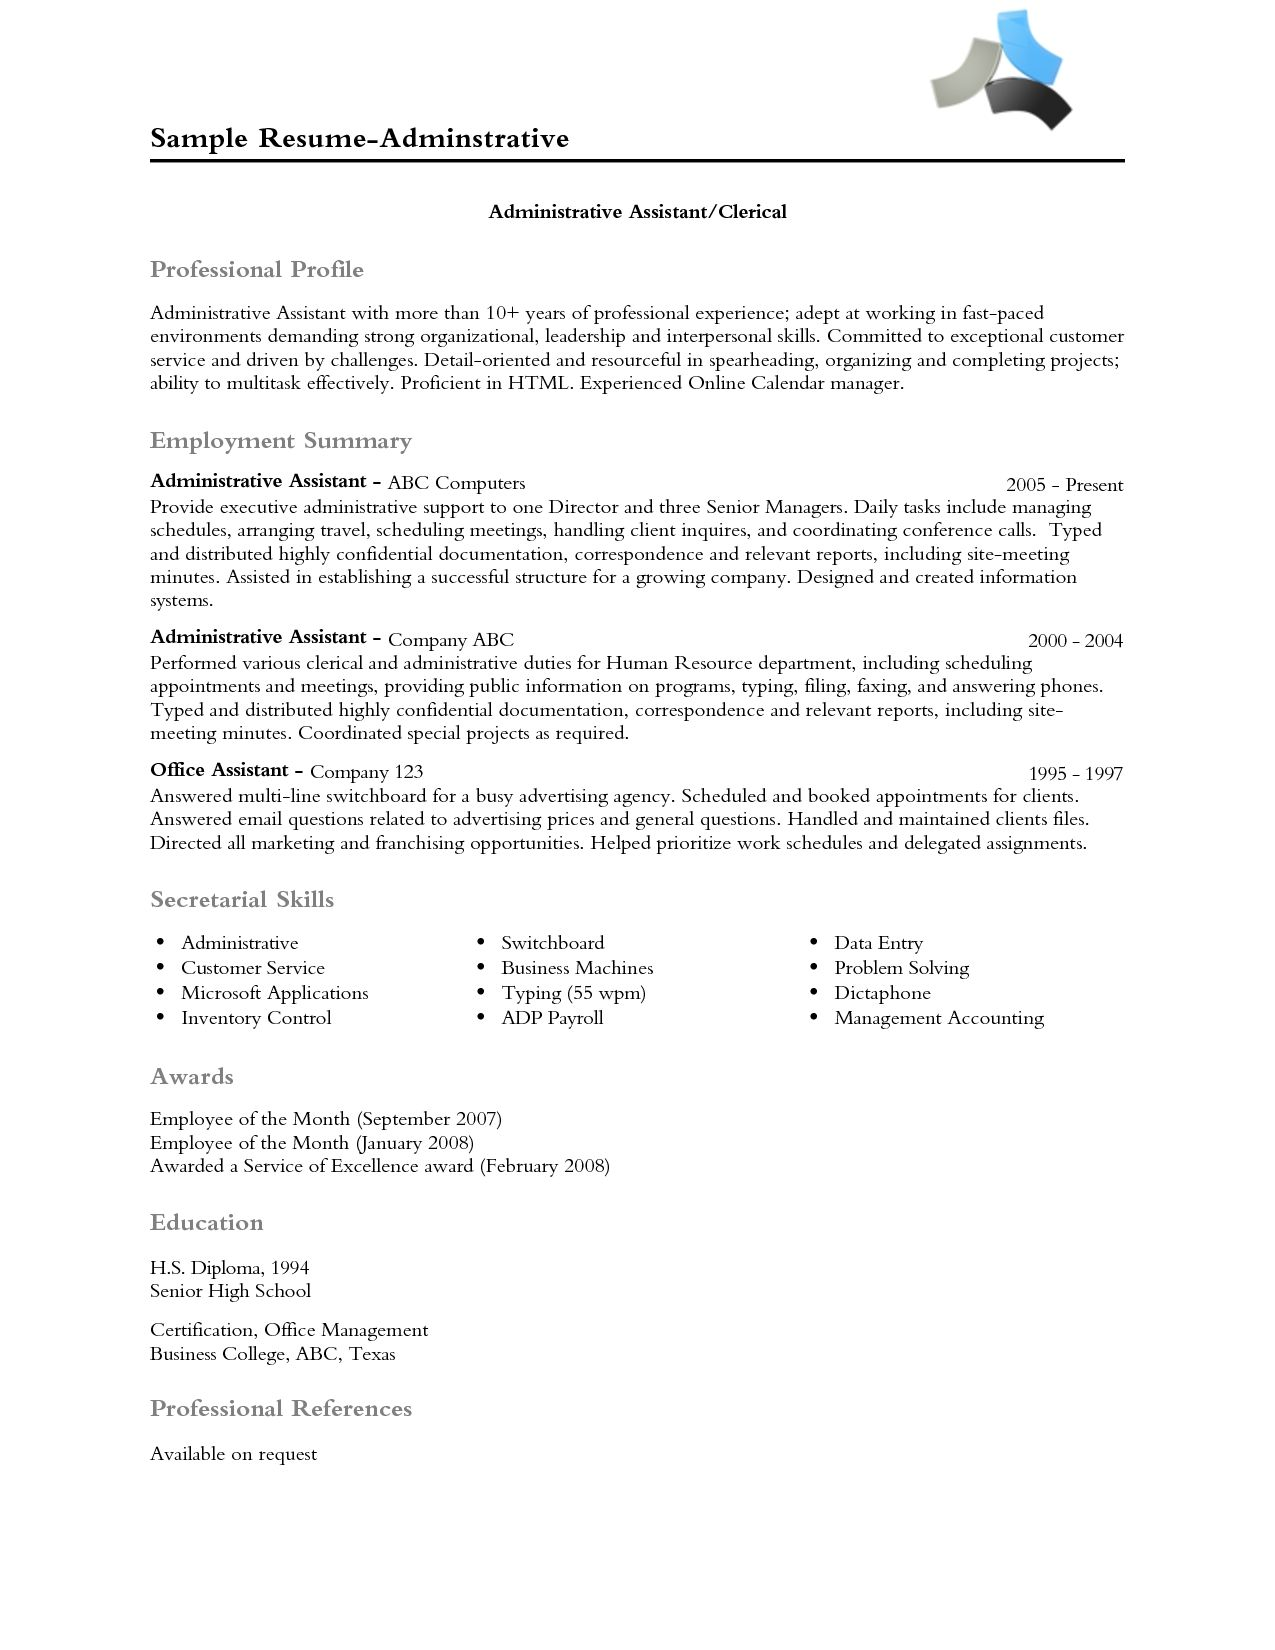 resume professional profile examples professional profile